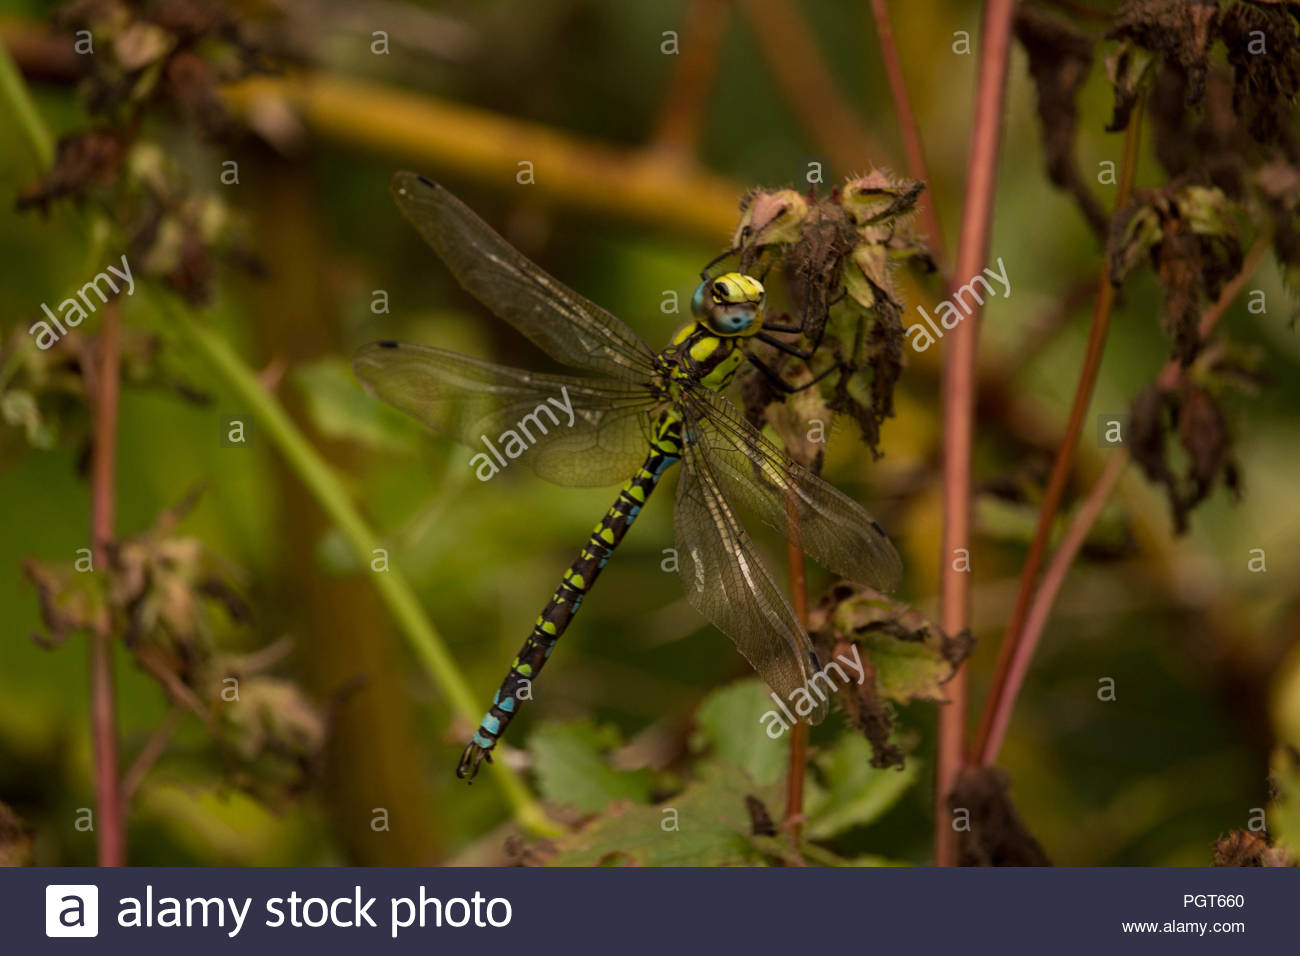 Natural World - Fascinating insect predators. A single dragonfly settling   on garden foliage. Stock Photo